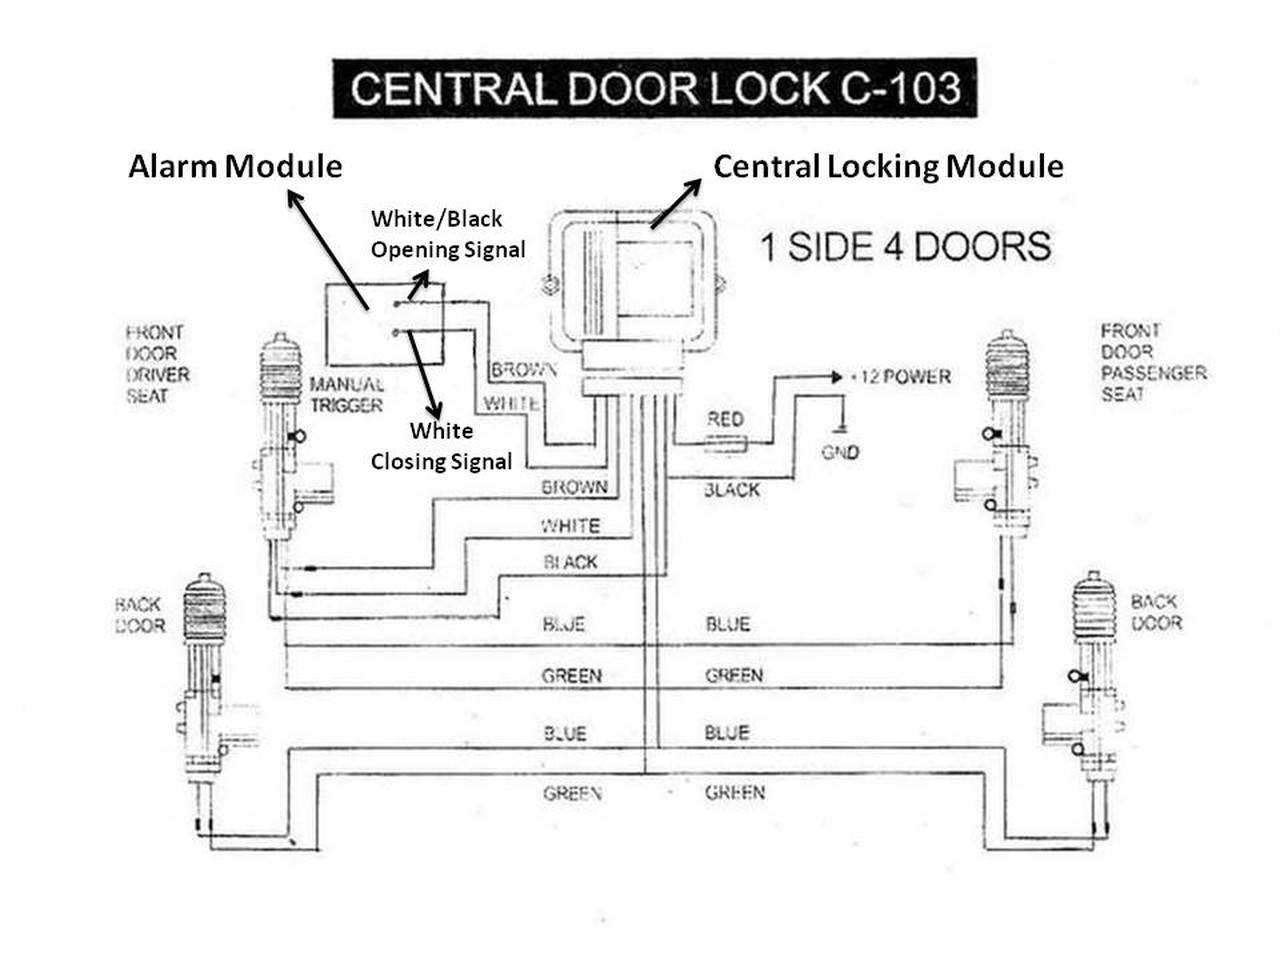 Vs Commodore Central Locking Wiring Diagram Archive Of Automotive High Quality Car Alarm Remote Siren Shock Sensor Full Set Rh Ebay Com Au